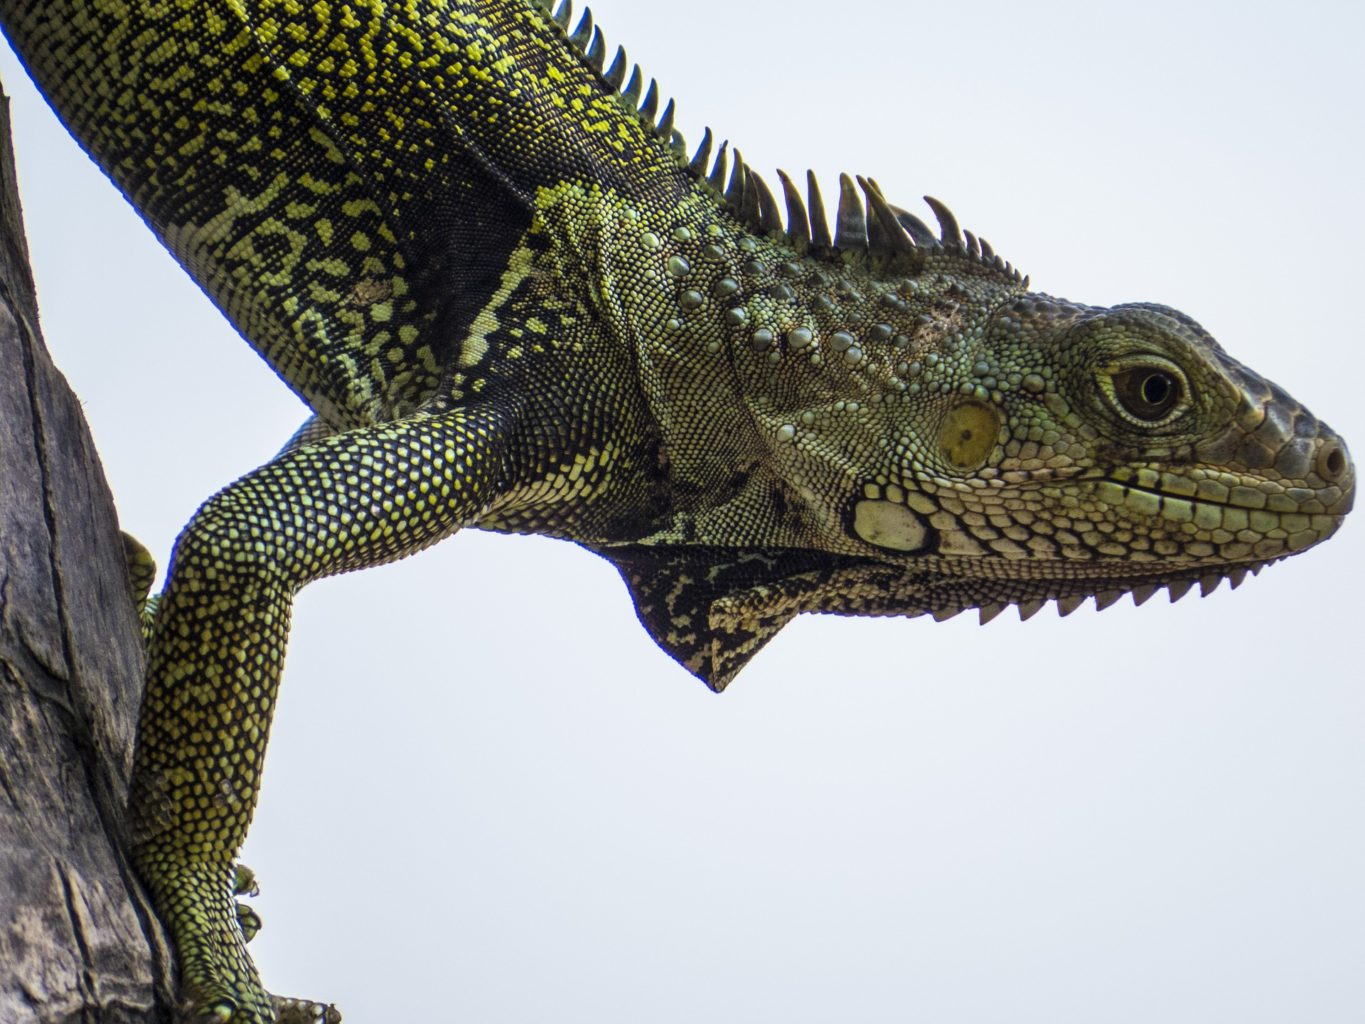 a green iguana looking out from a tree trunk